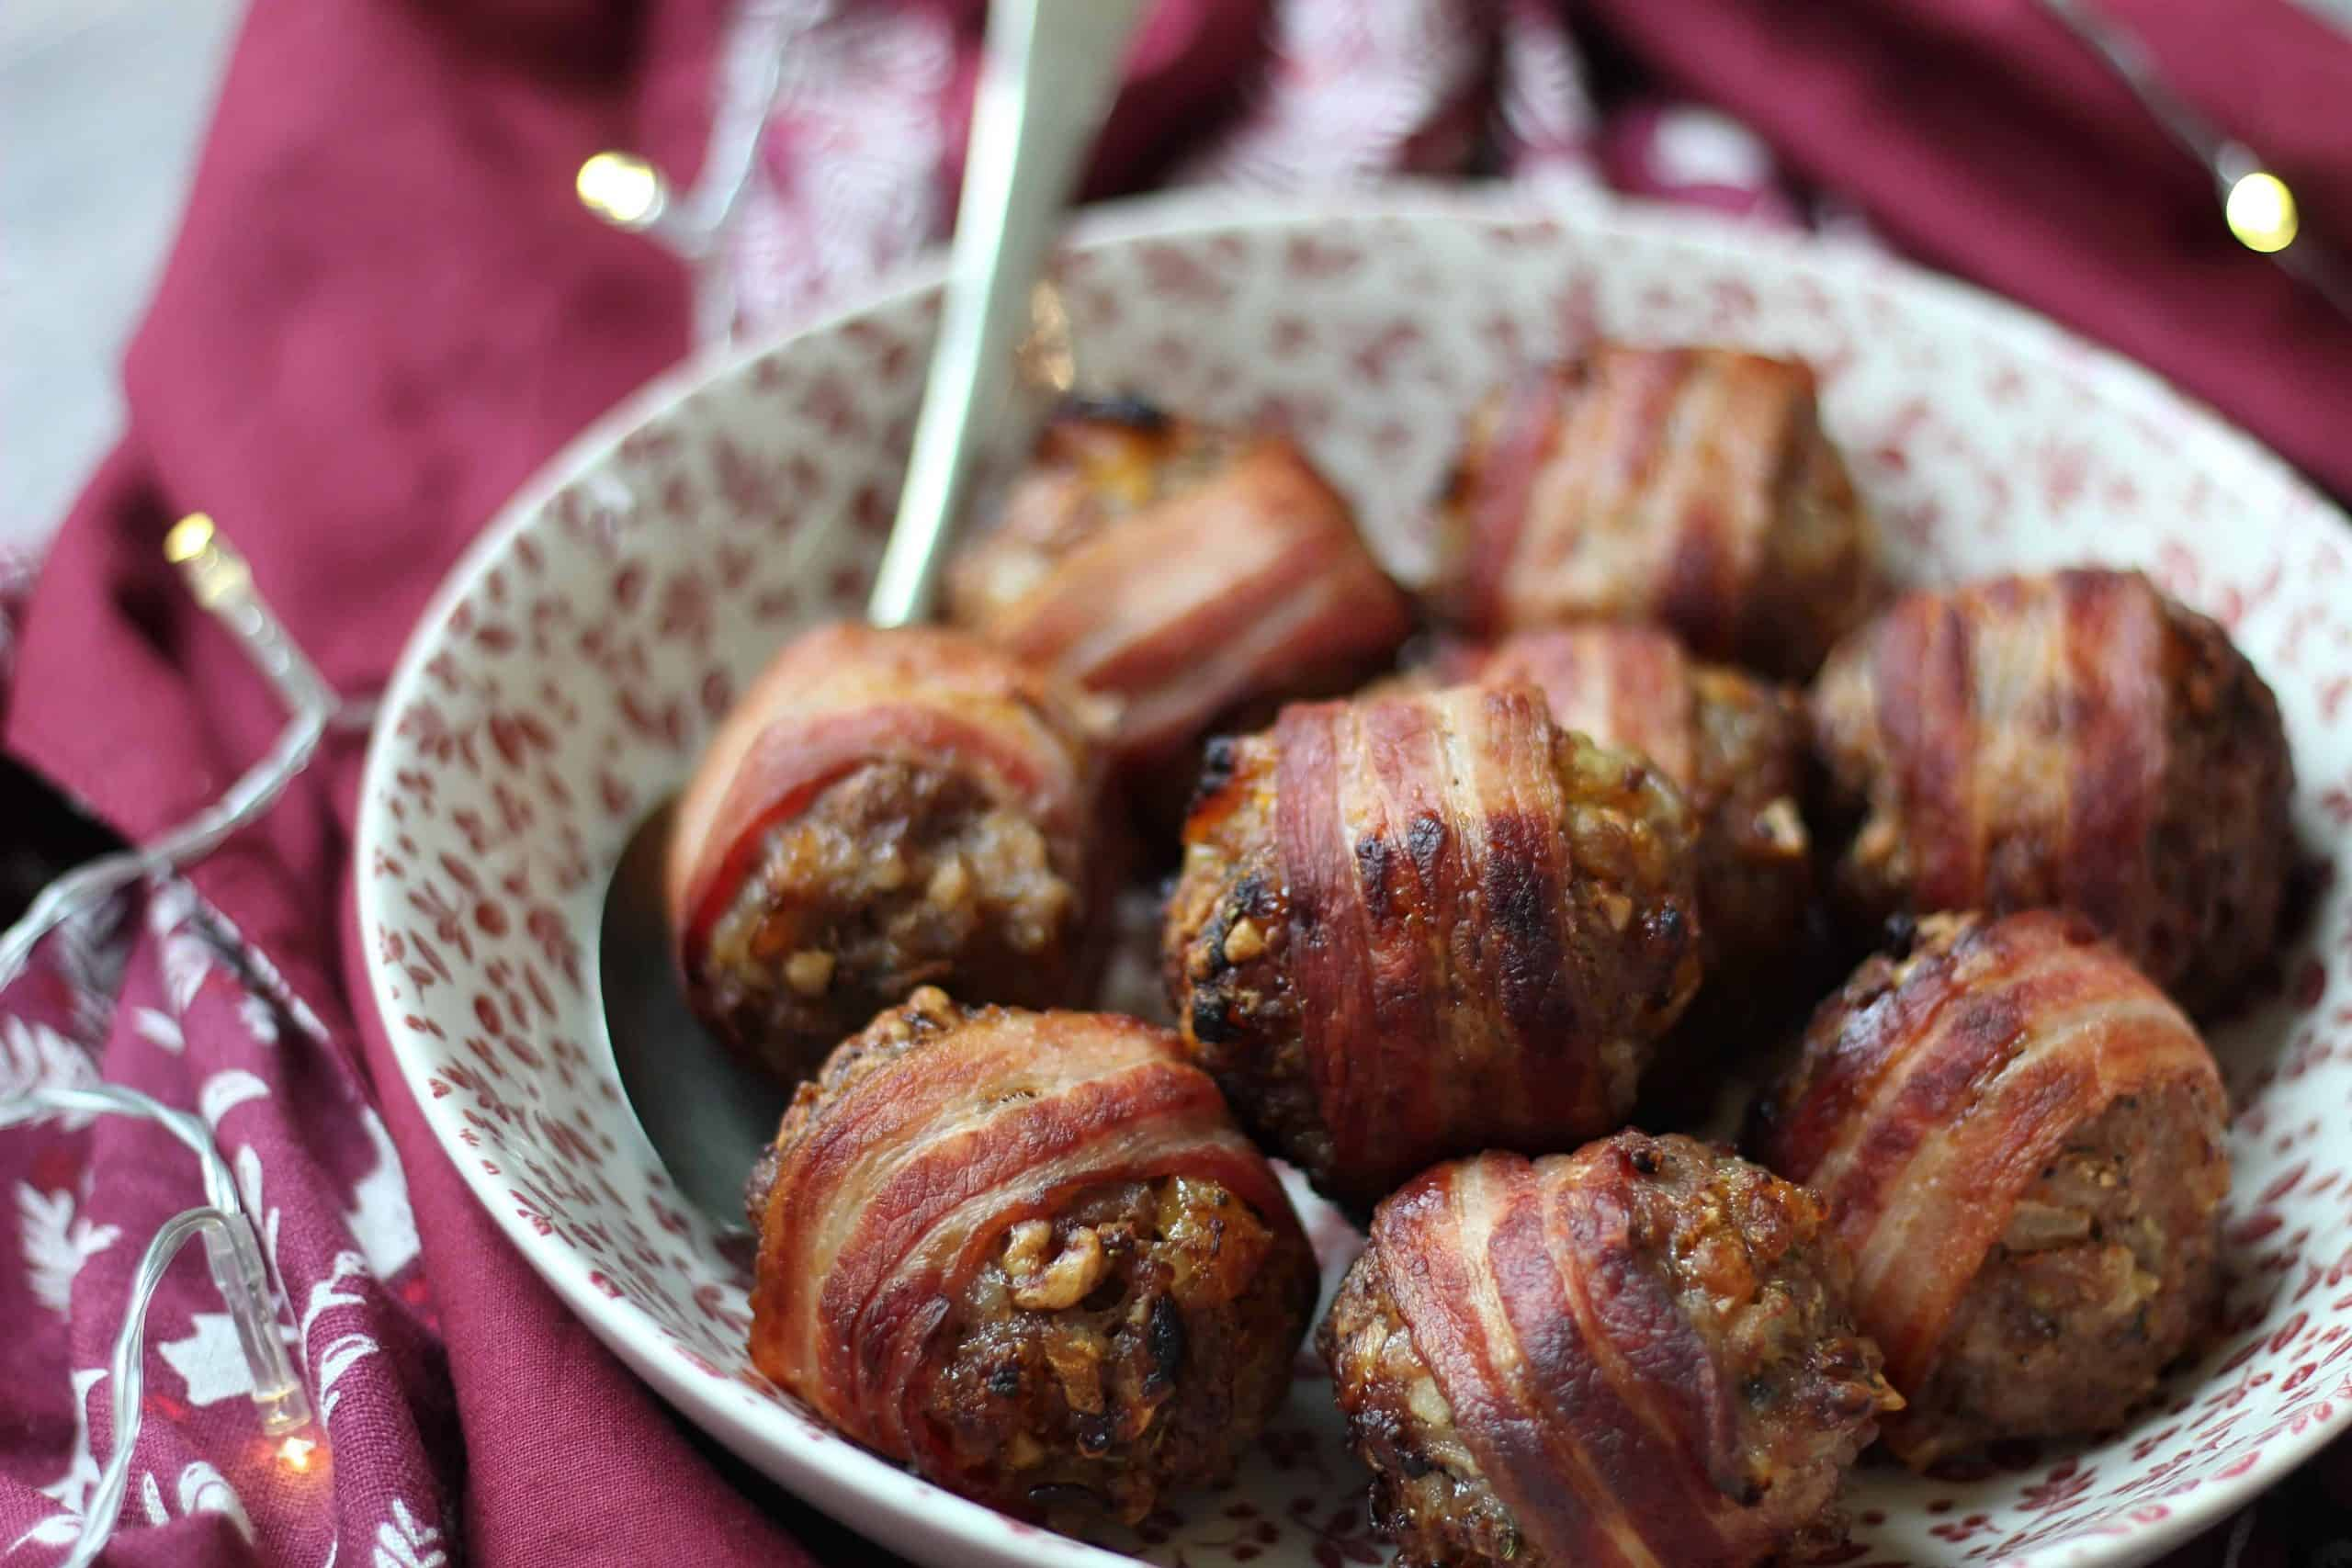 GLUTEN FREE STUFFING BALLS WRAPPED IN BACON